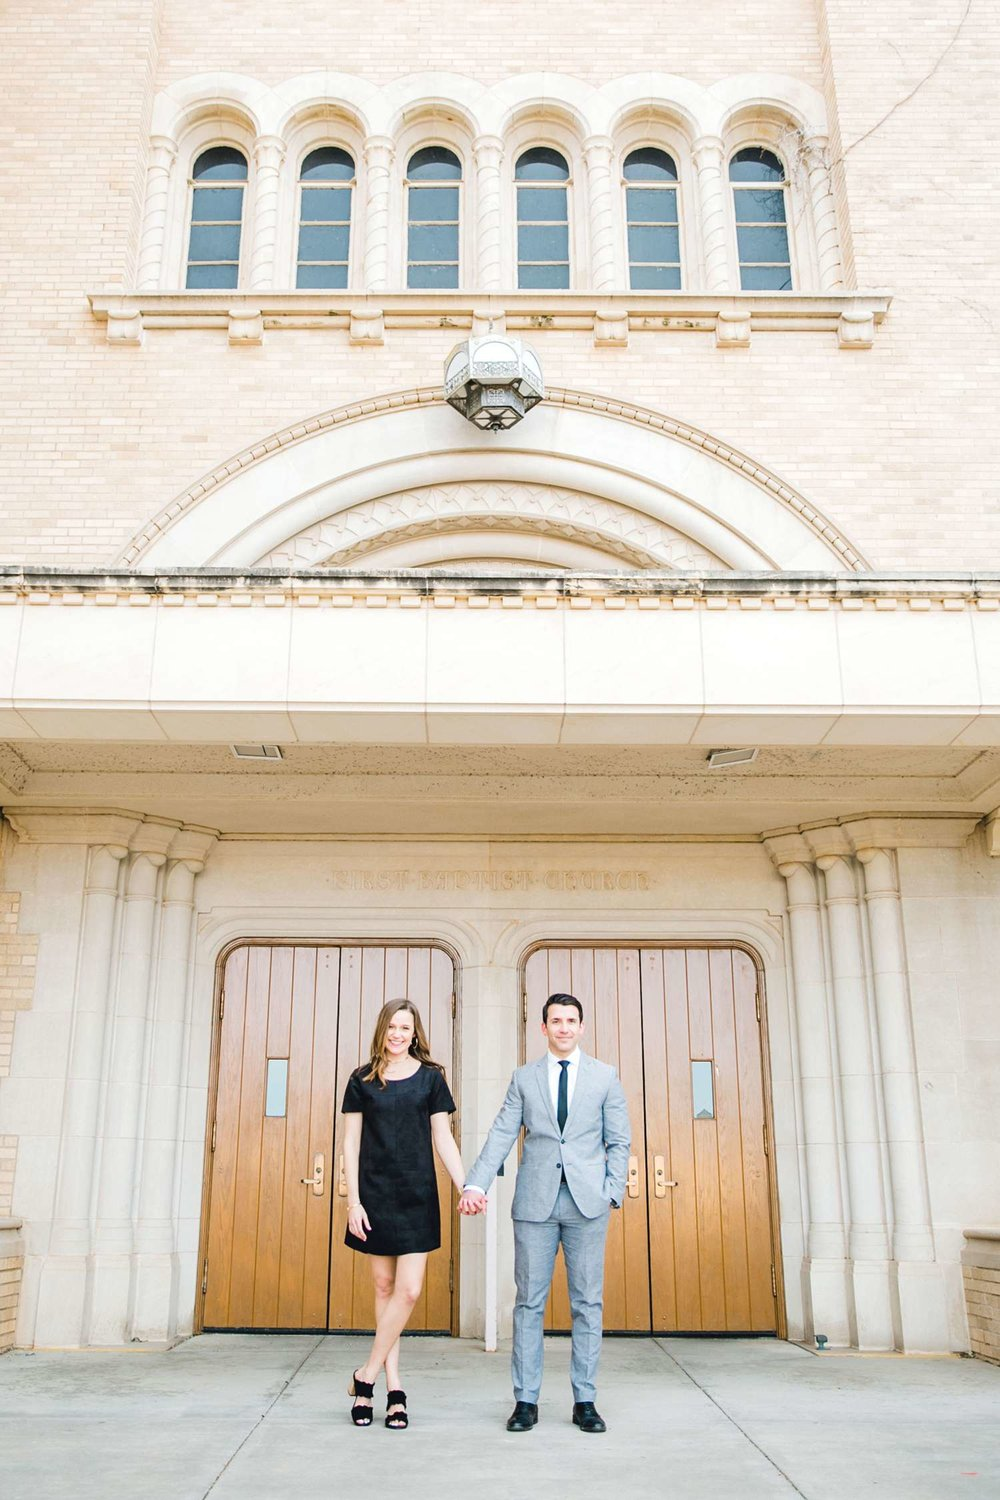 CAROLINE+CHRISTIAN+ALLEEJ+ENGAGEMENTS+LUBBOCK+WEDDING+PHOTOGRAPHER+FIRST+BAPTIST+CHURCH_0024.jpg